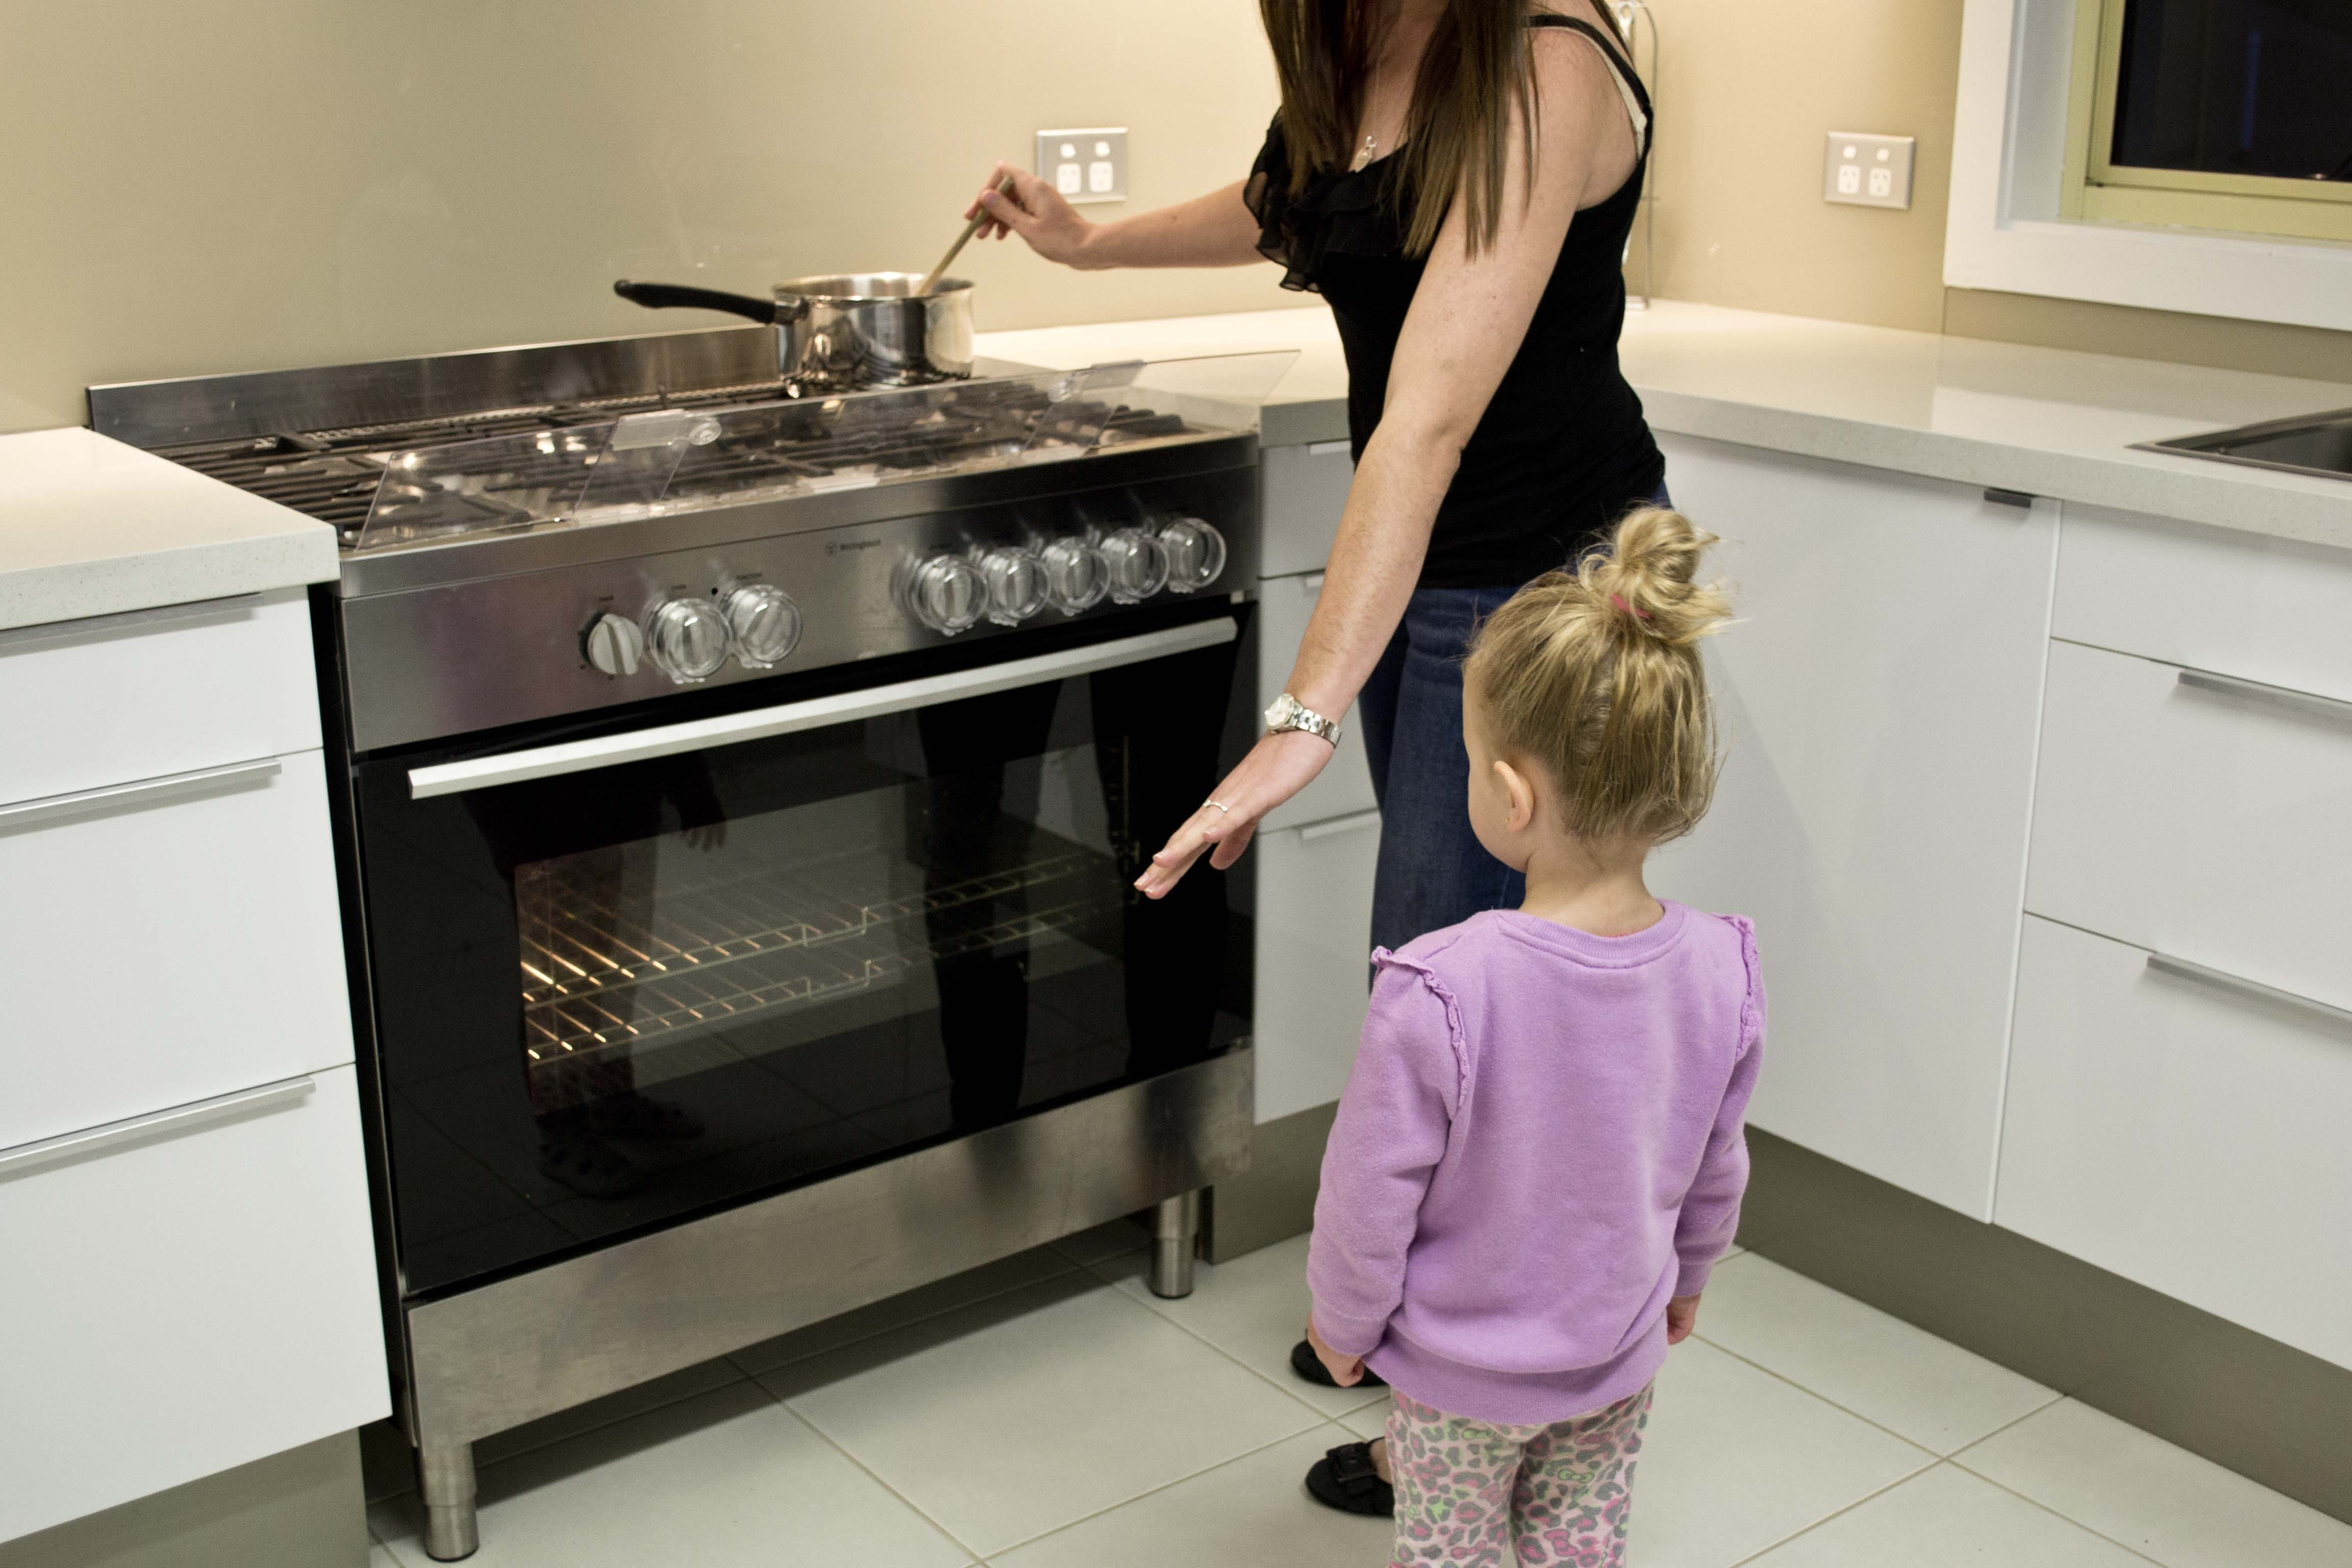 child-safety-kitchen.jpg (1)